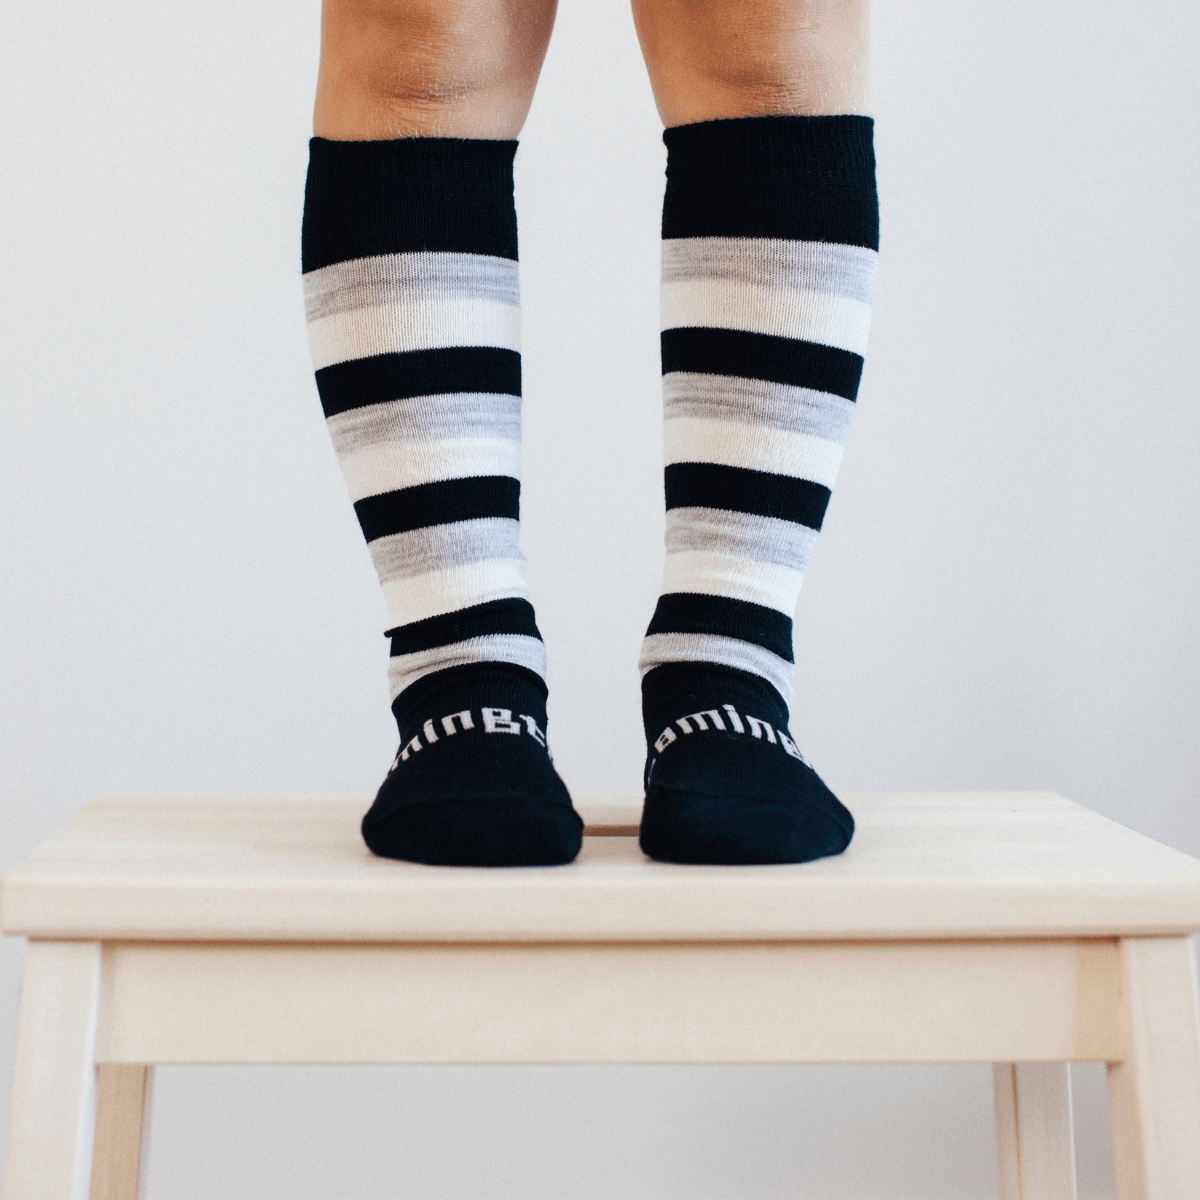 Lamington Arthur Knee Socks